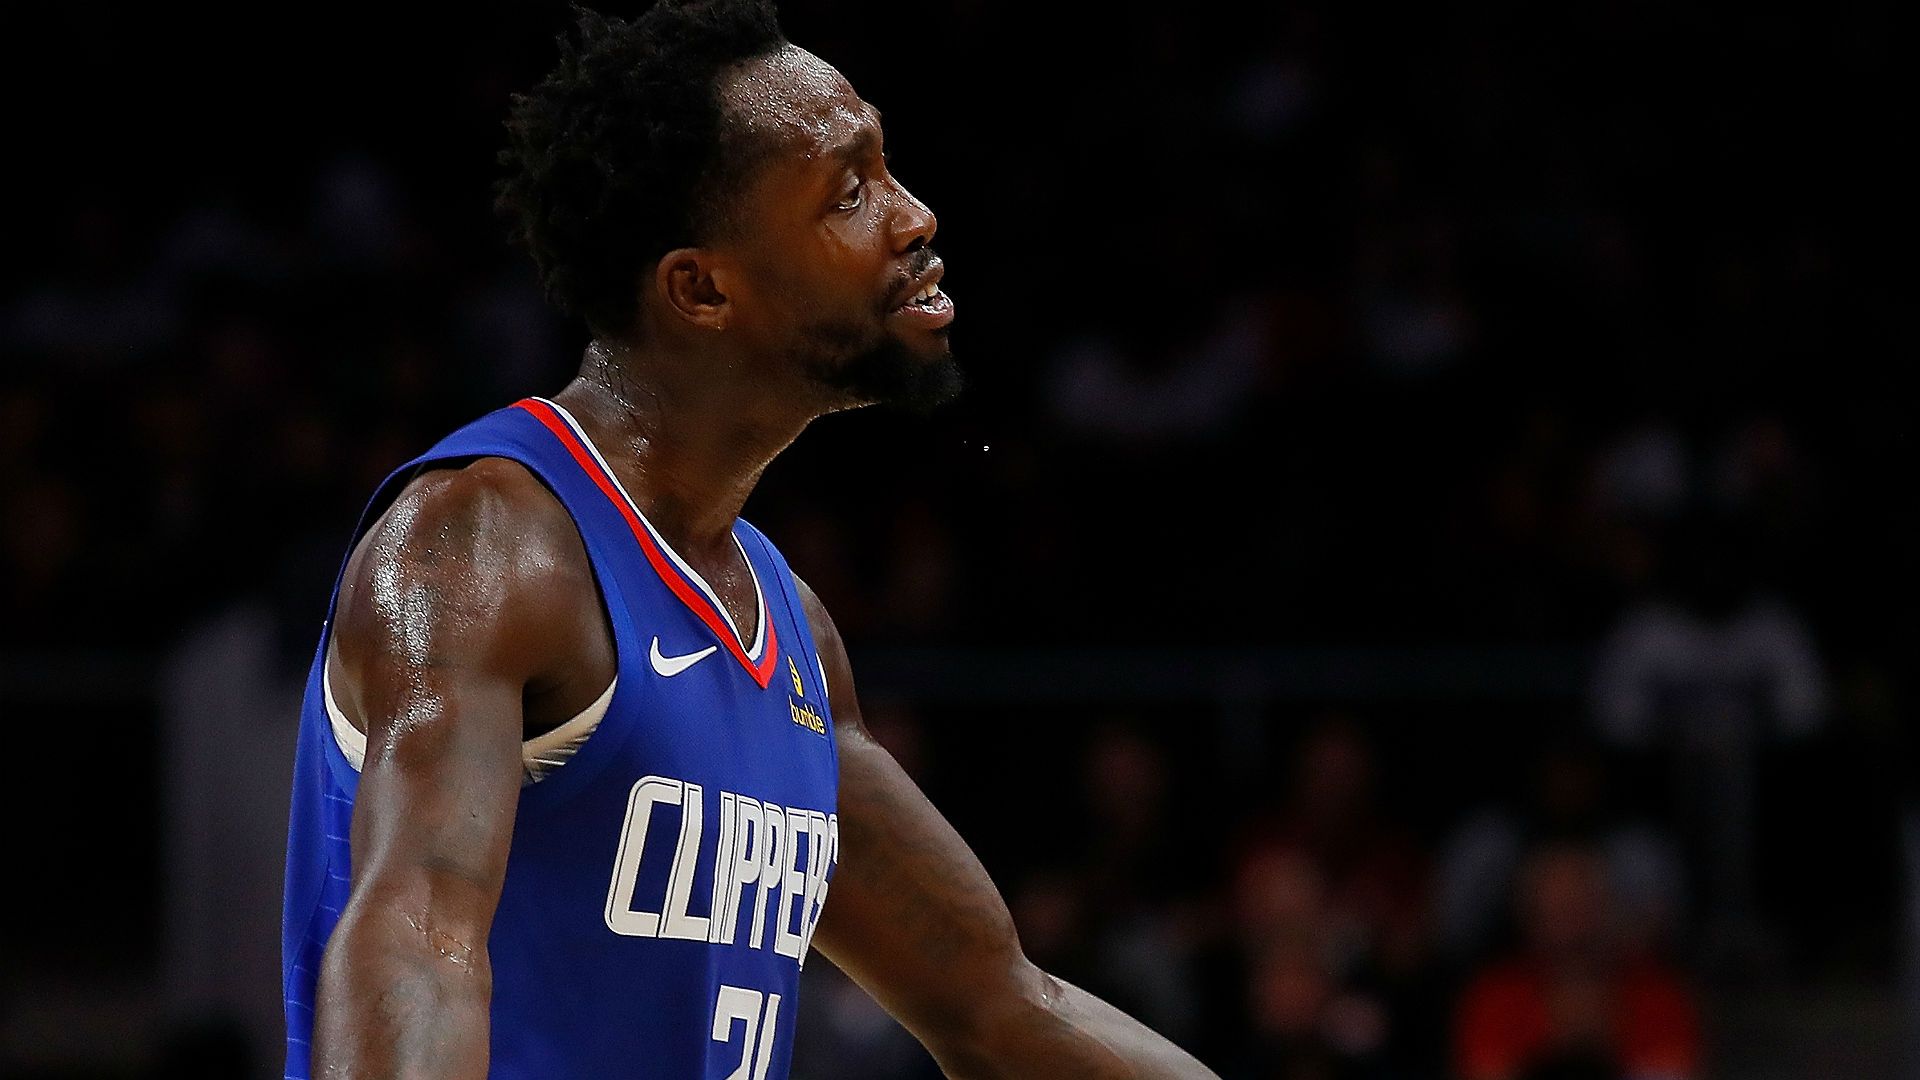 Patrick Beverley knocks out Dennis Smith Jr.'s tooth